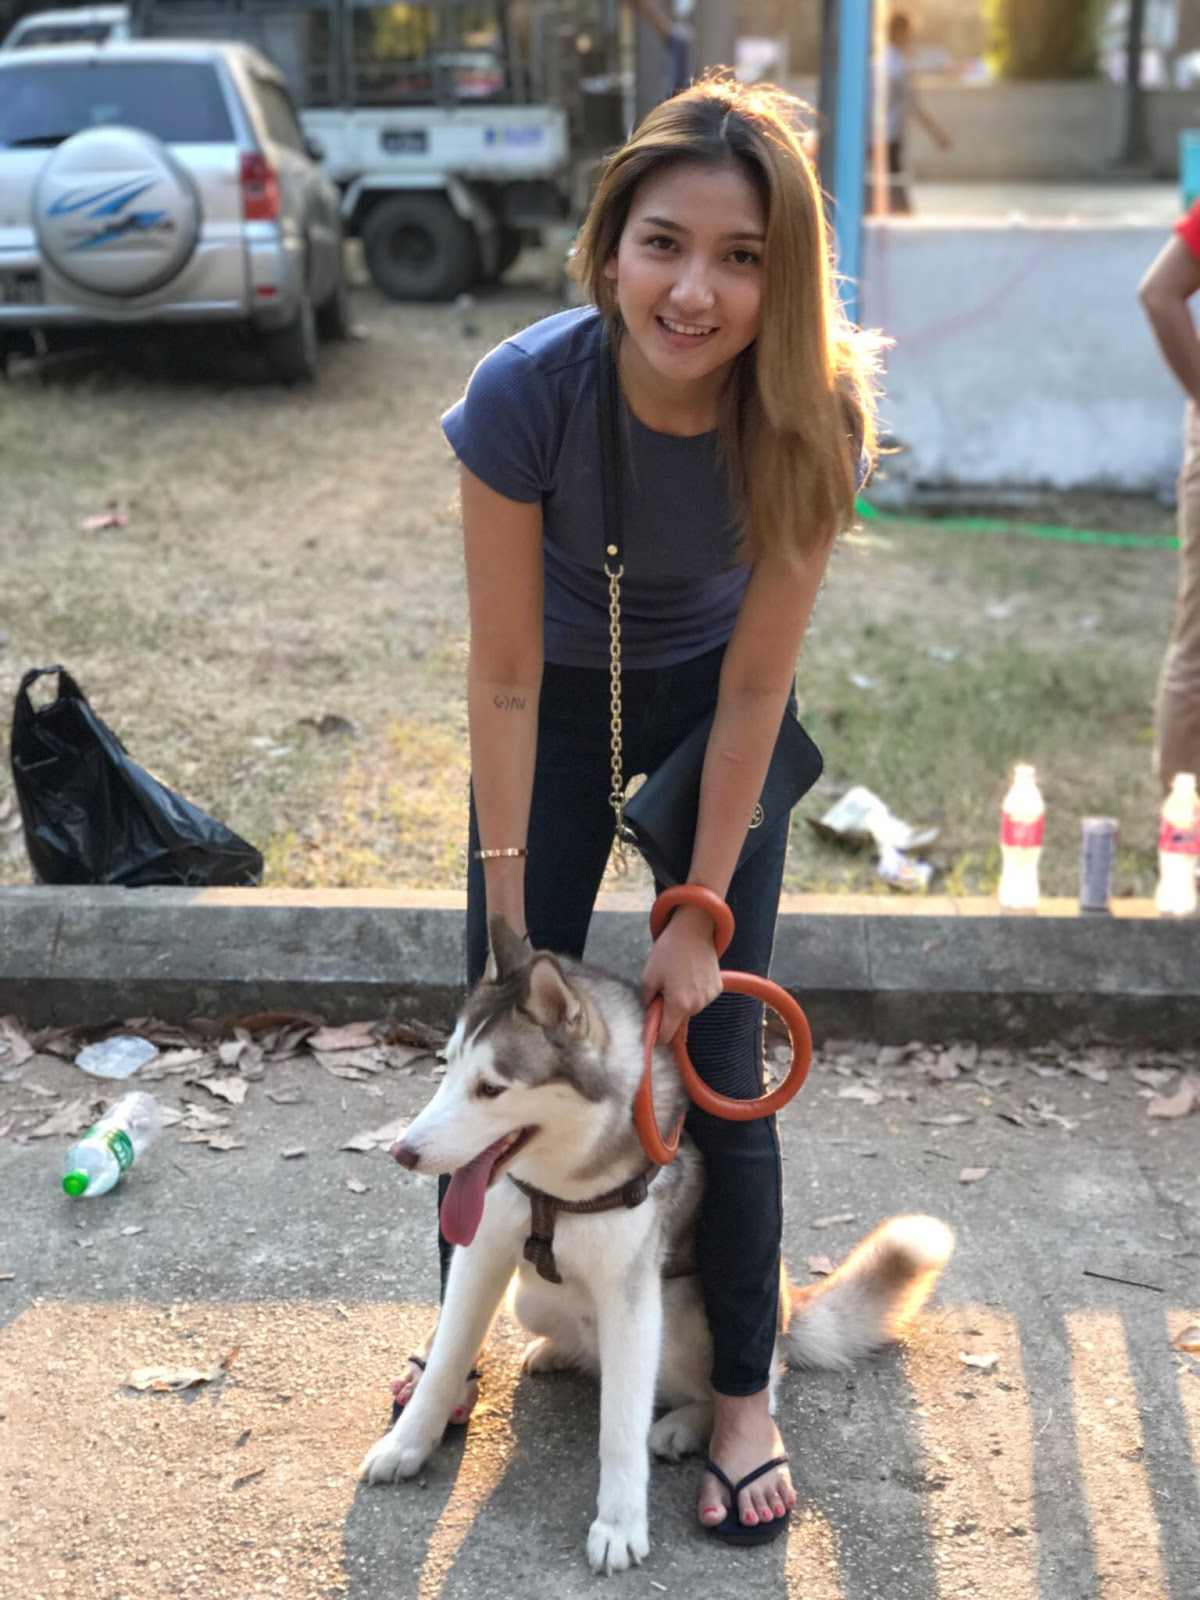 M Seng Lu and Her Pet Husky Dog Playing At The Park